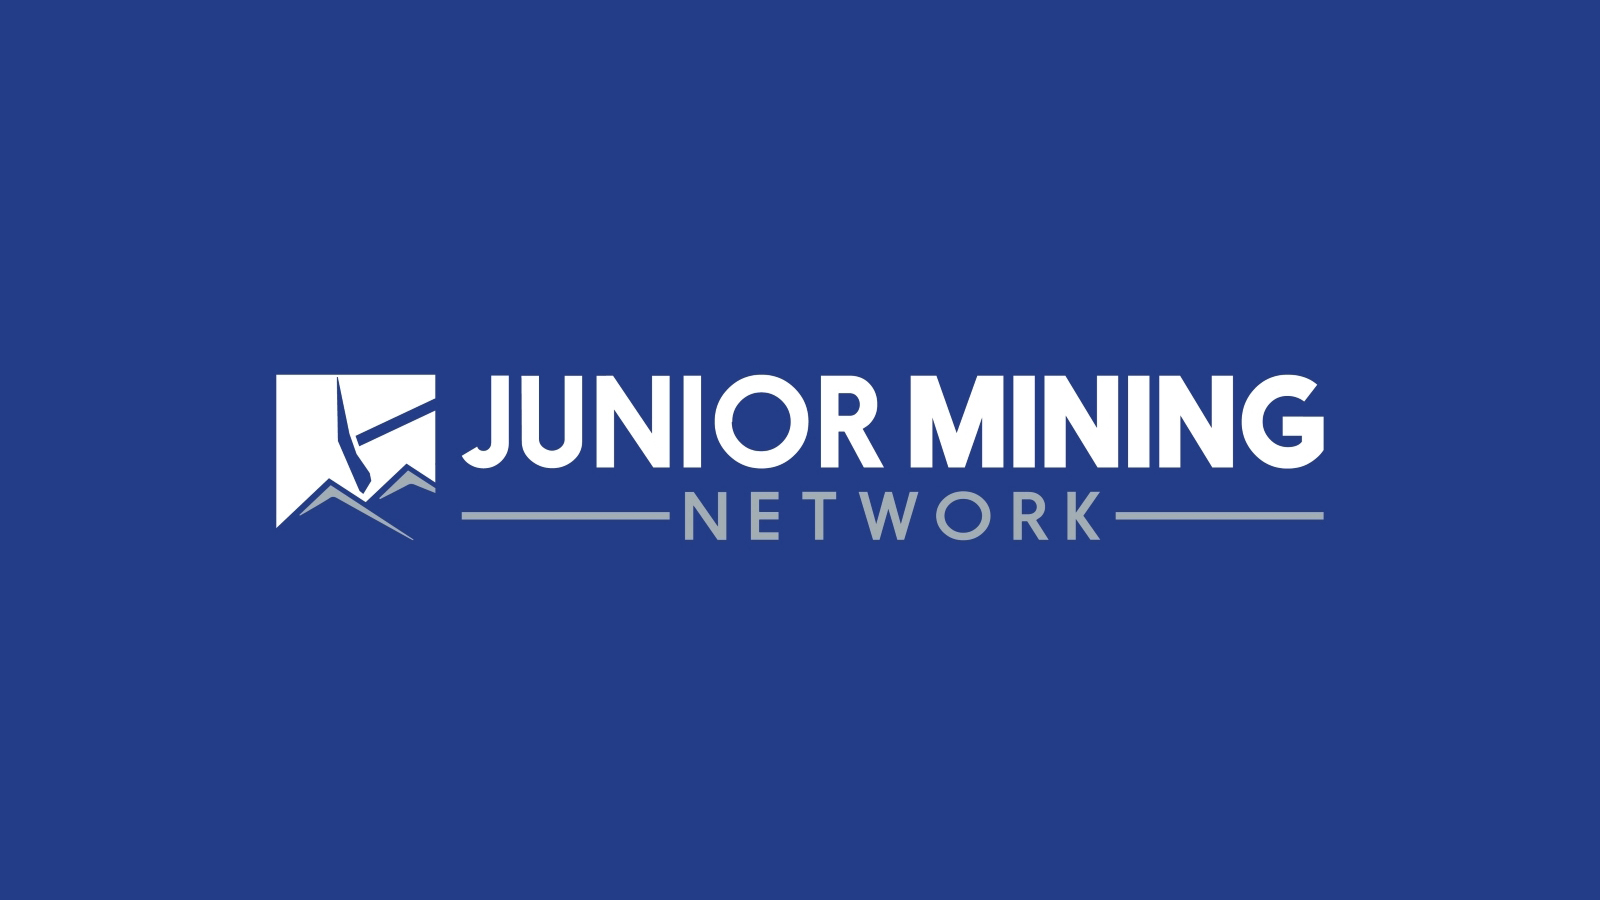 Scorpio Mining Corporation and U.S. Silver & Gold Inc. receive shareholder approval for business combination